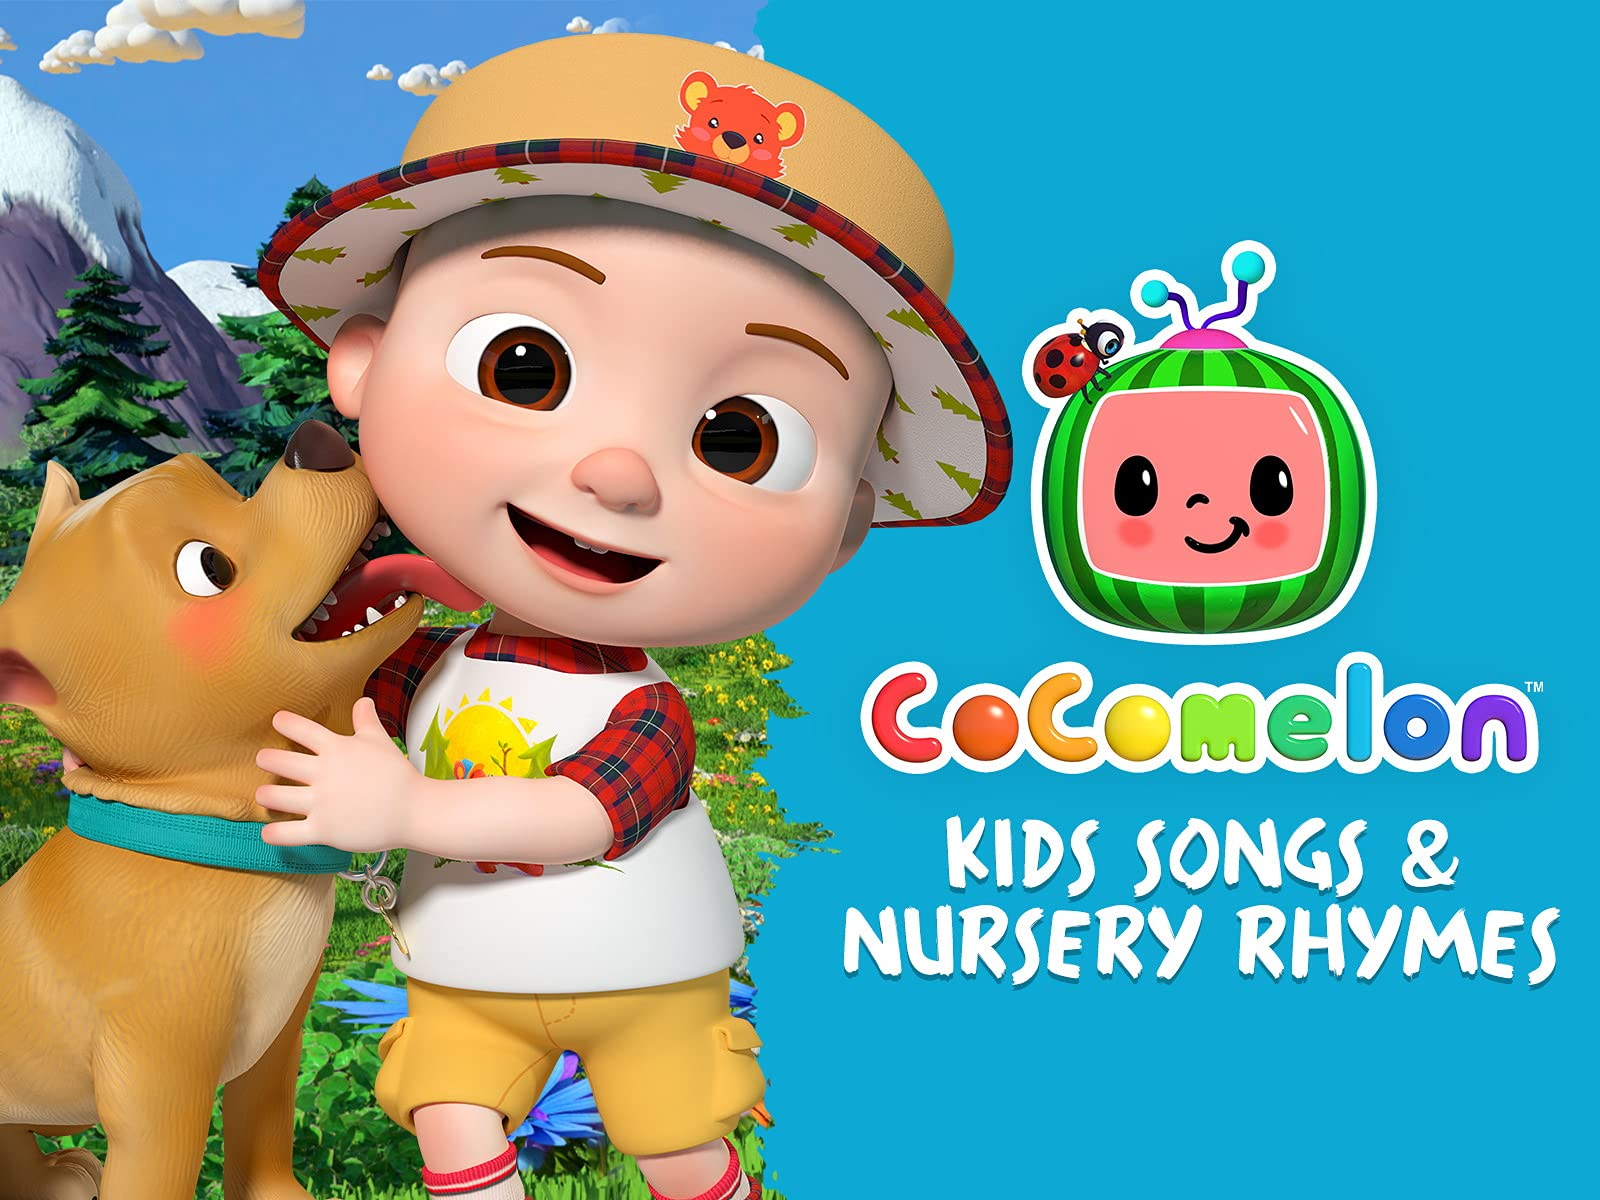 CoComelon - Kids Songs and Nursery Rhymes on Amazon Prime Video UK